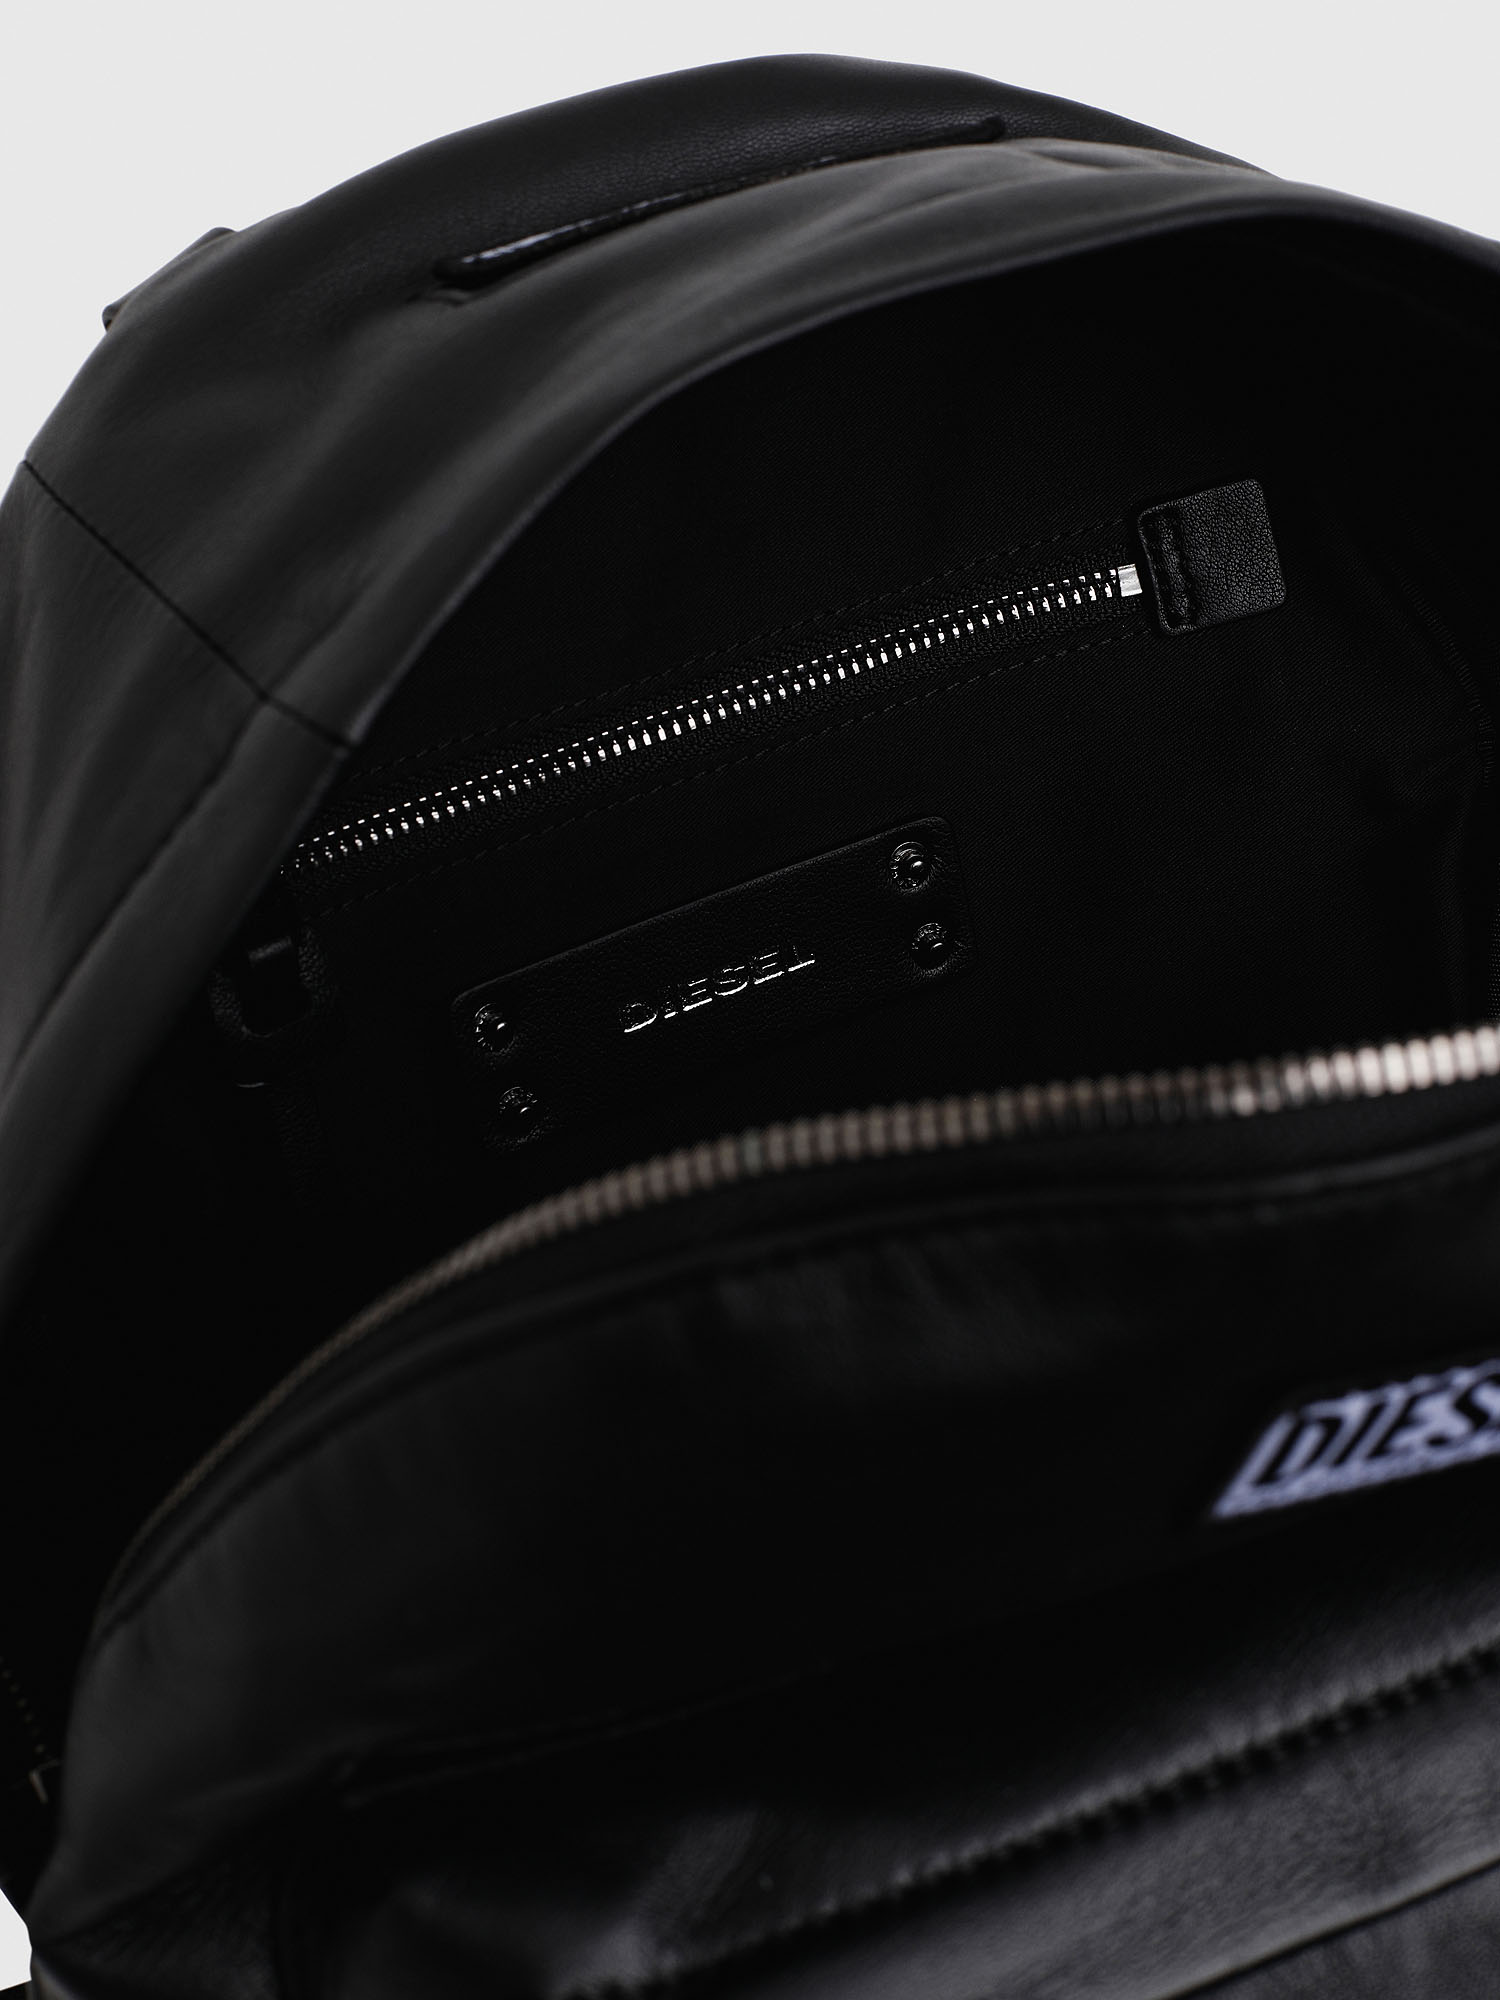 Diesel - LE-ZIPPER BACKPACK,  - Backpacks - Image 4